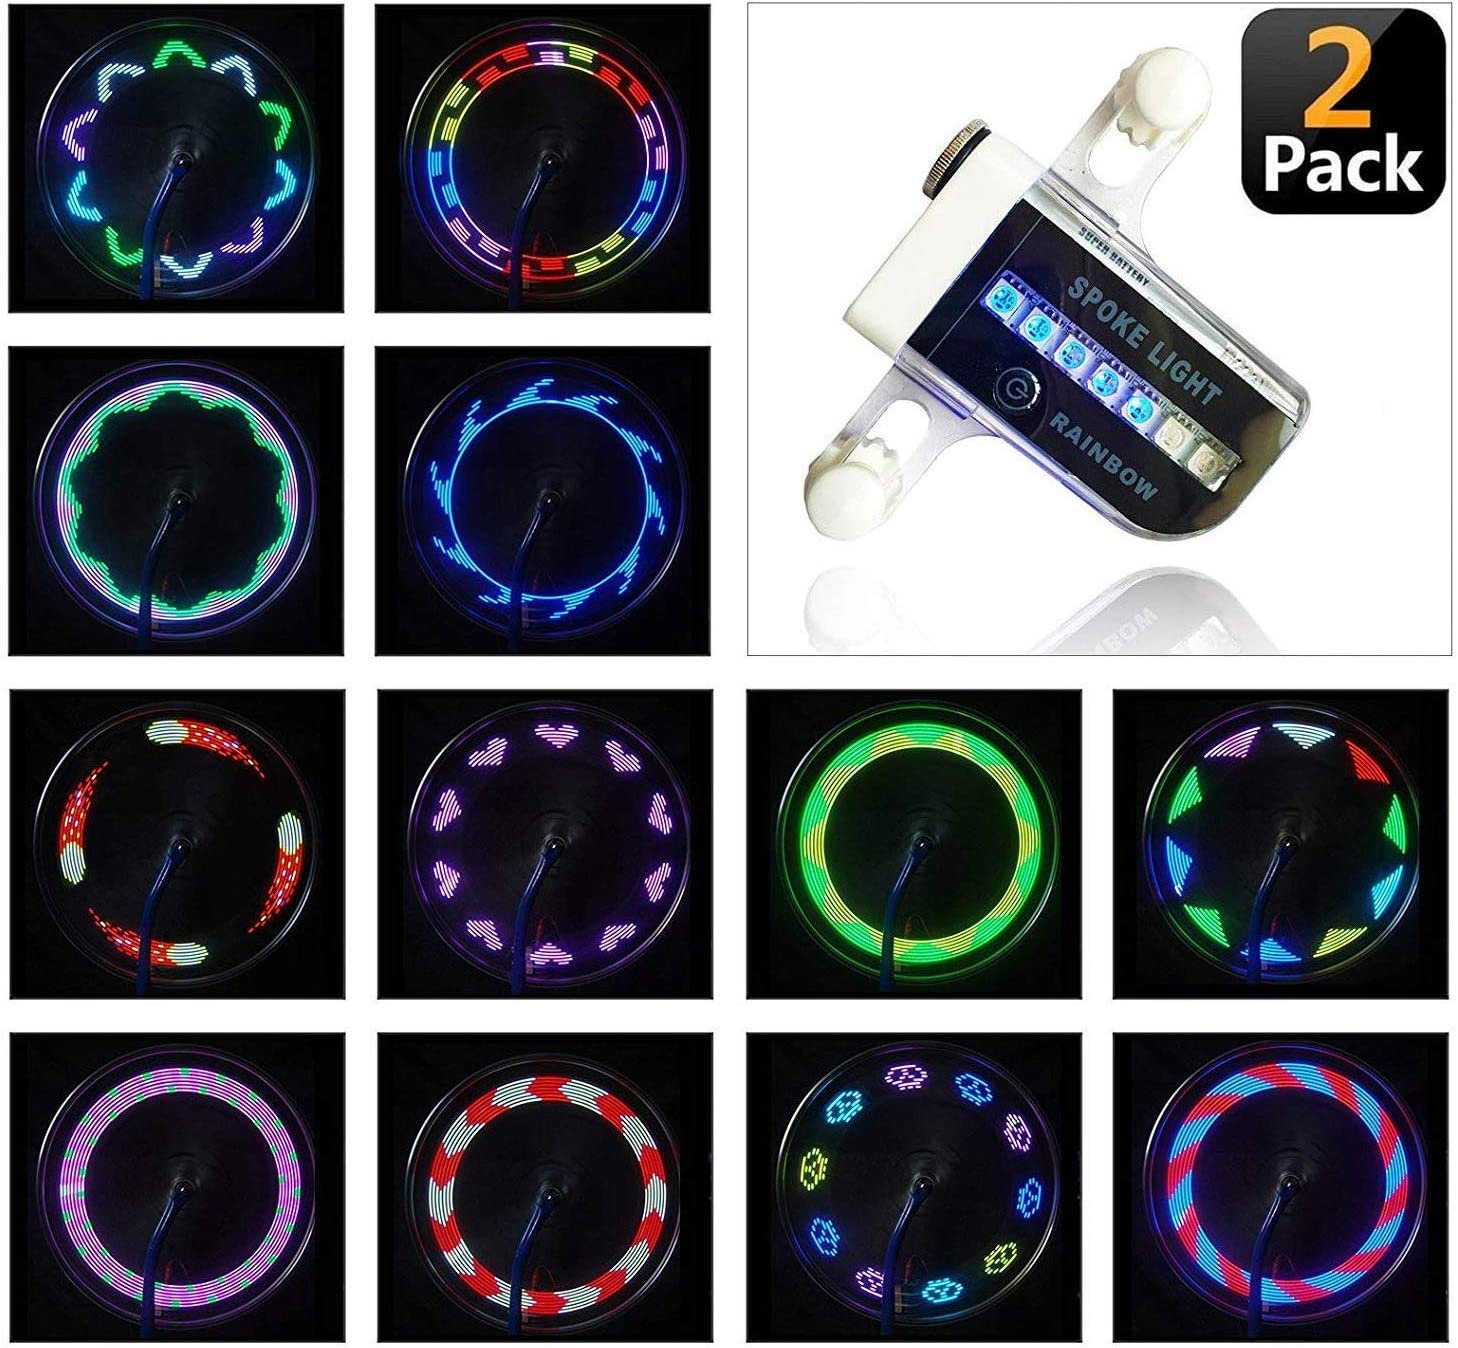 AIKELIDA Bike Wheel Lights - Waterproof Ultra Bright 14 LED Bicycle Wheel Spoke Decorations Light - 30 Different Patterns Change - Colorful Bicycle Tire Accessories - Easy to Install (2 Pack)